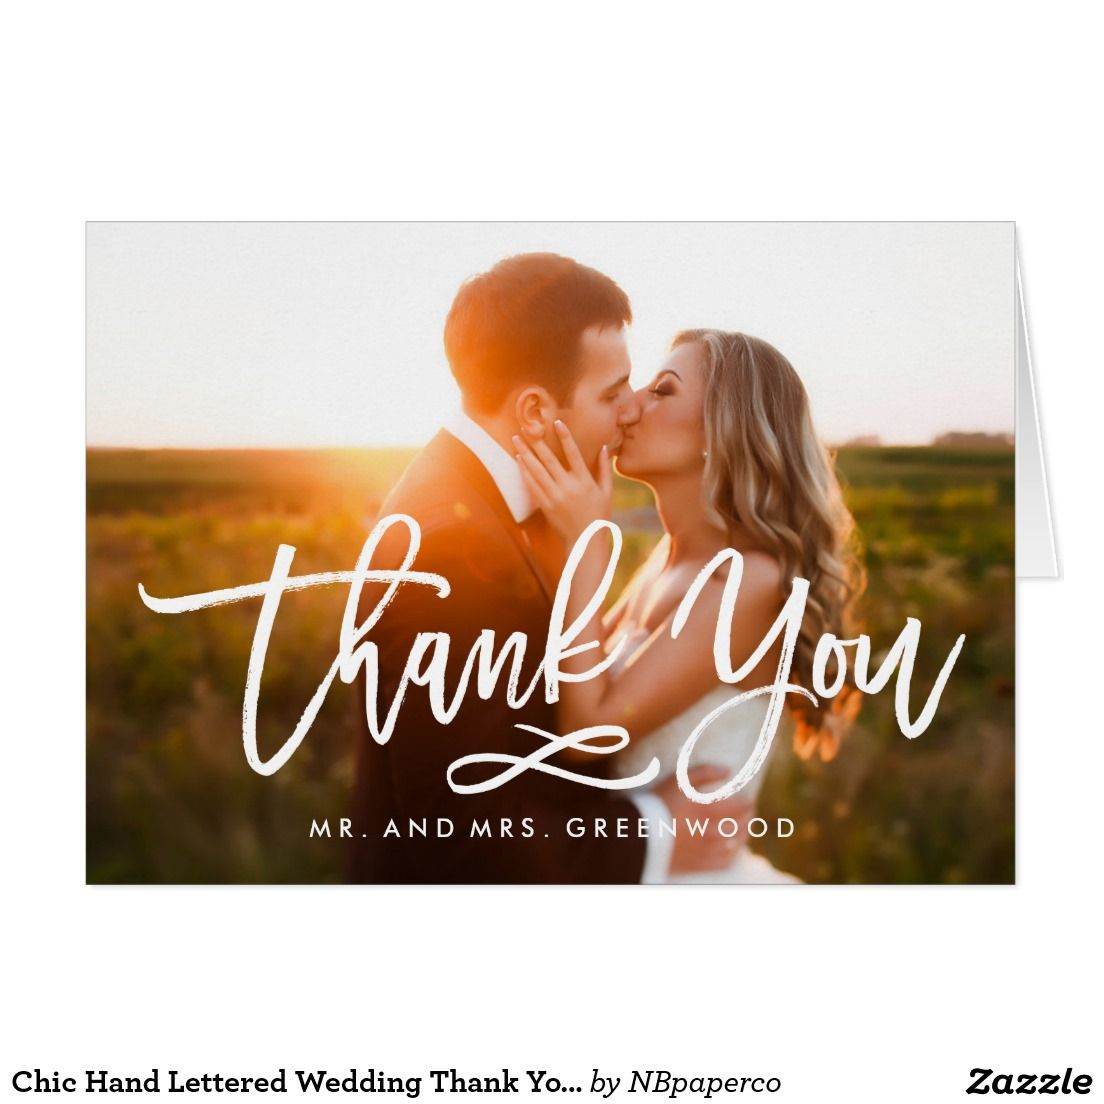 Chic Hand Lettered Wedding Thank You Photo Card | Photo cards ...